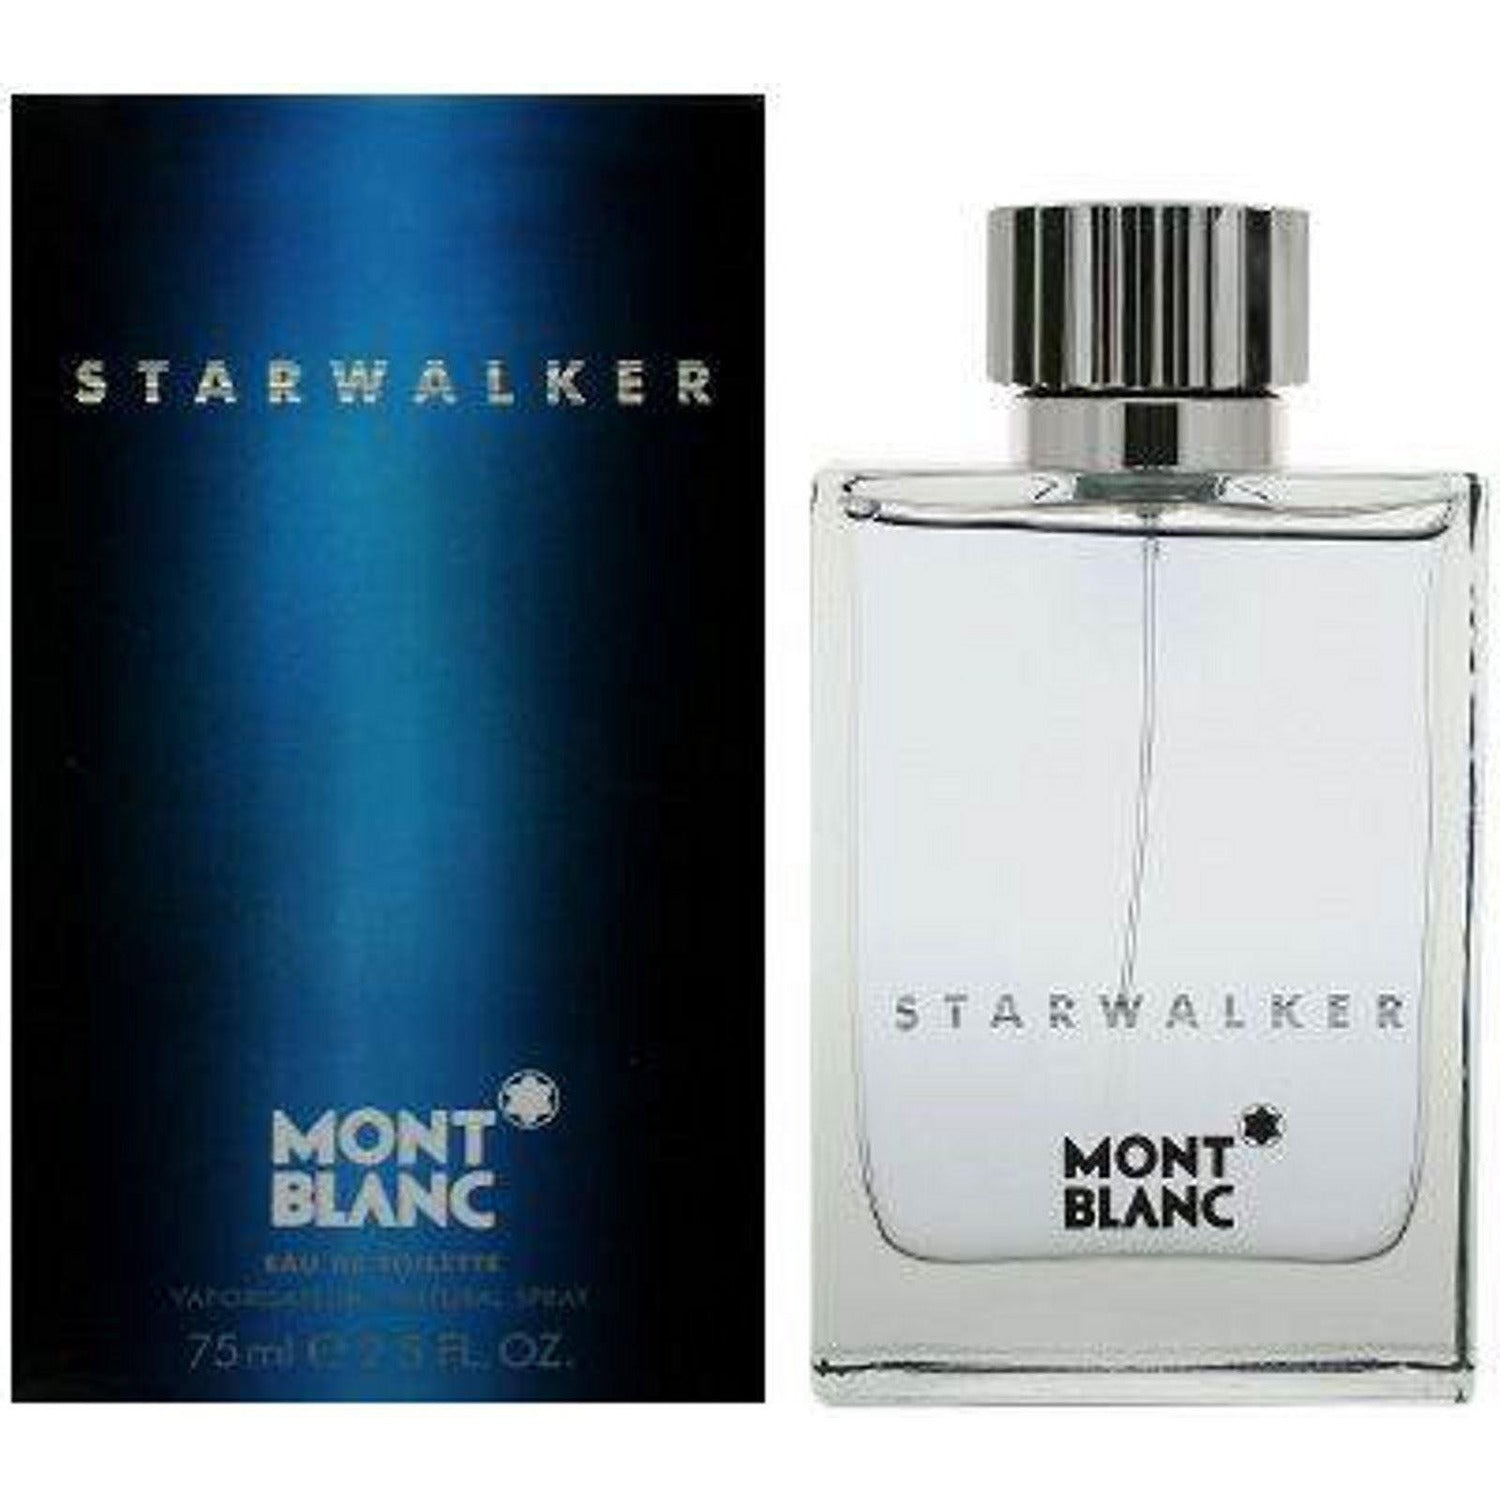 starwalker-by-mont-blanc-2-5-oz-edt-men-cologne-new-in-box